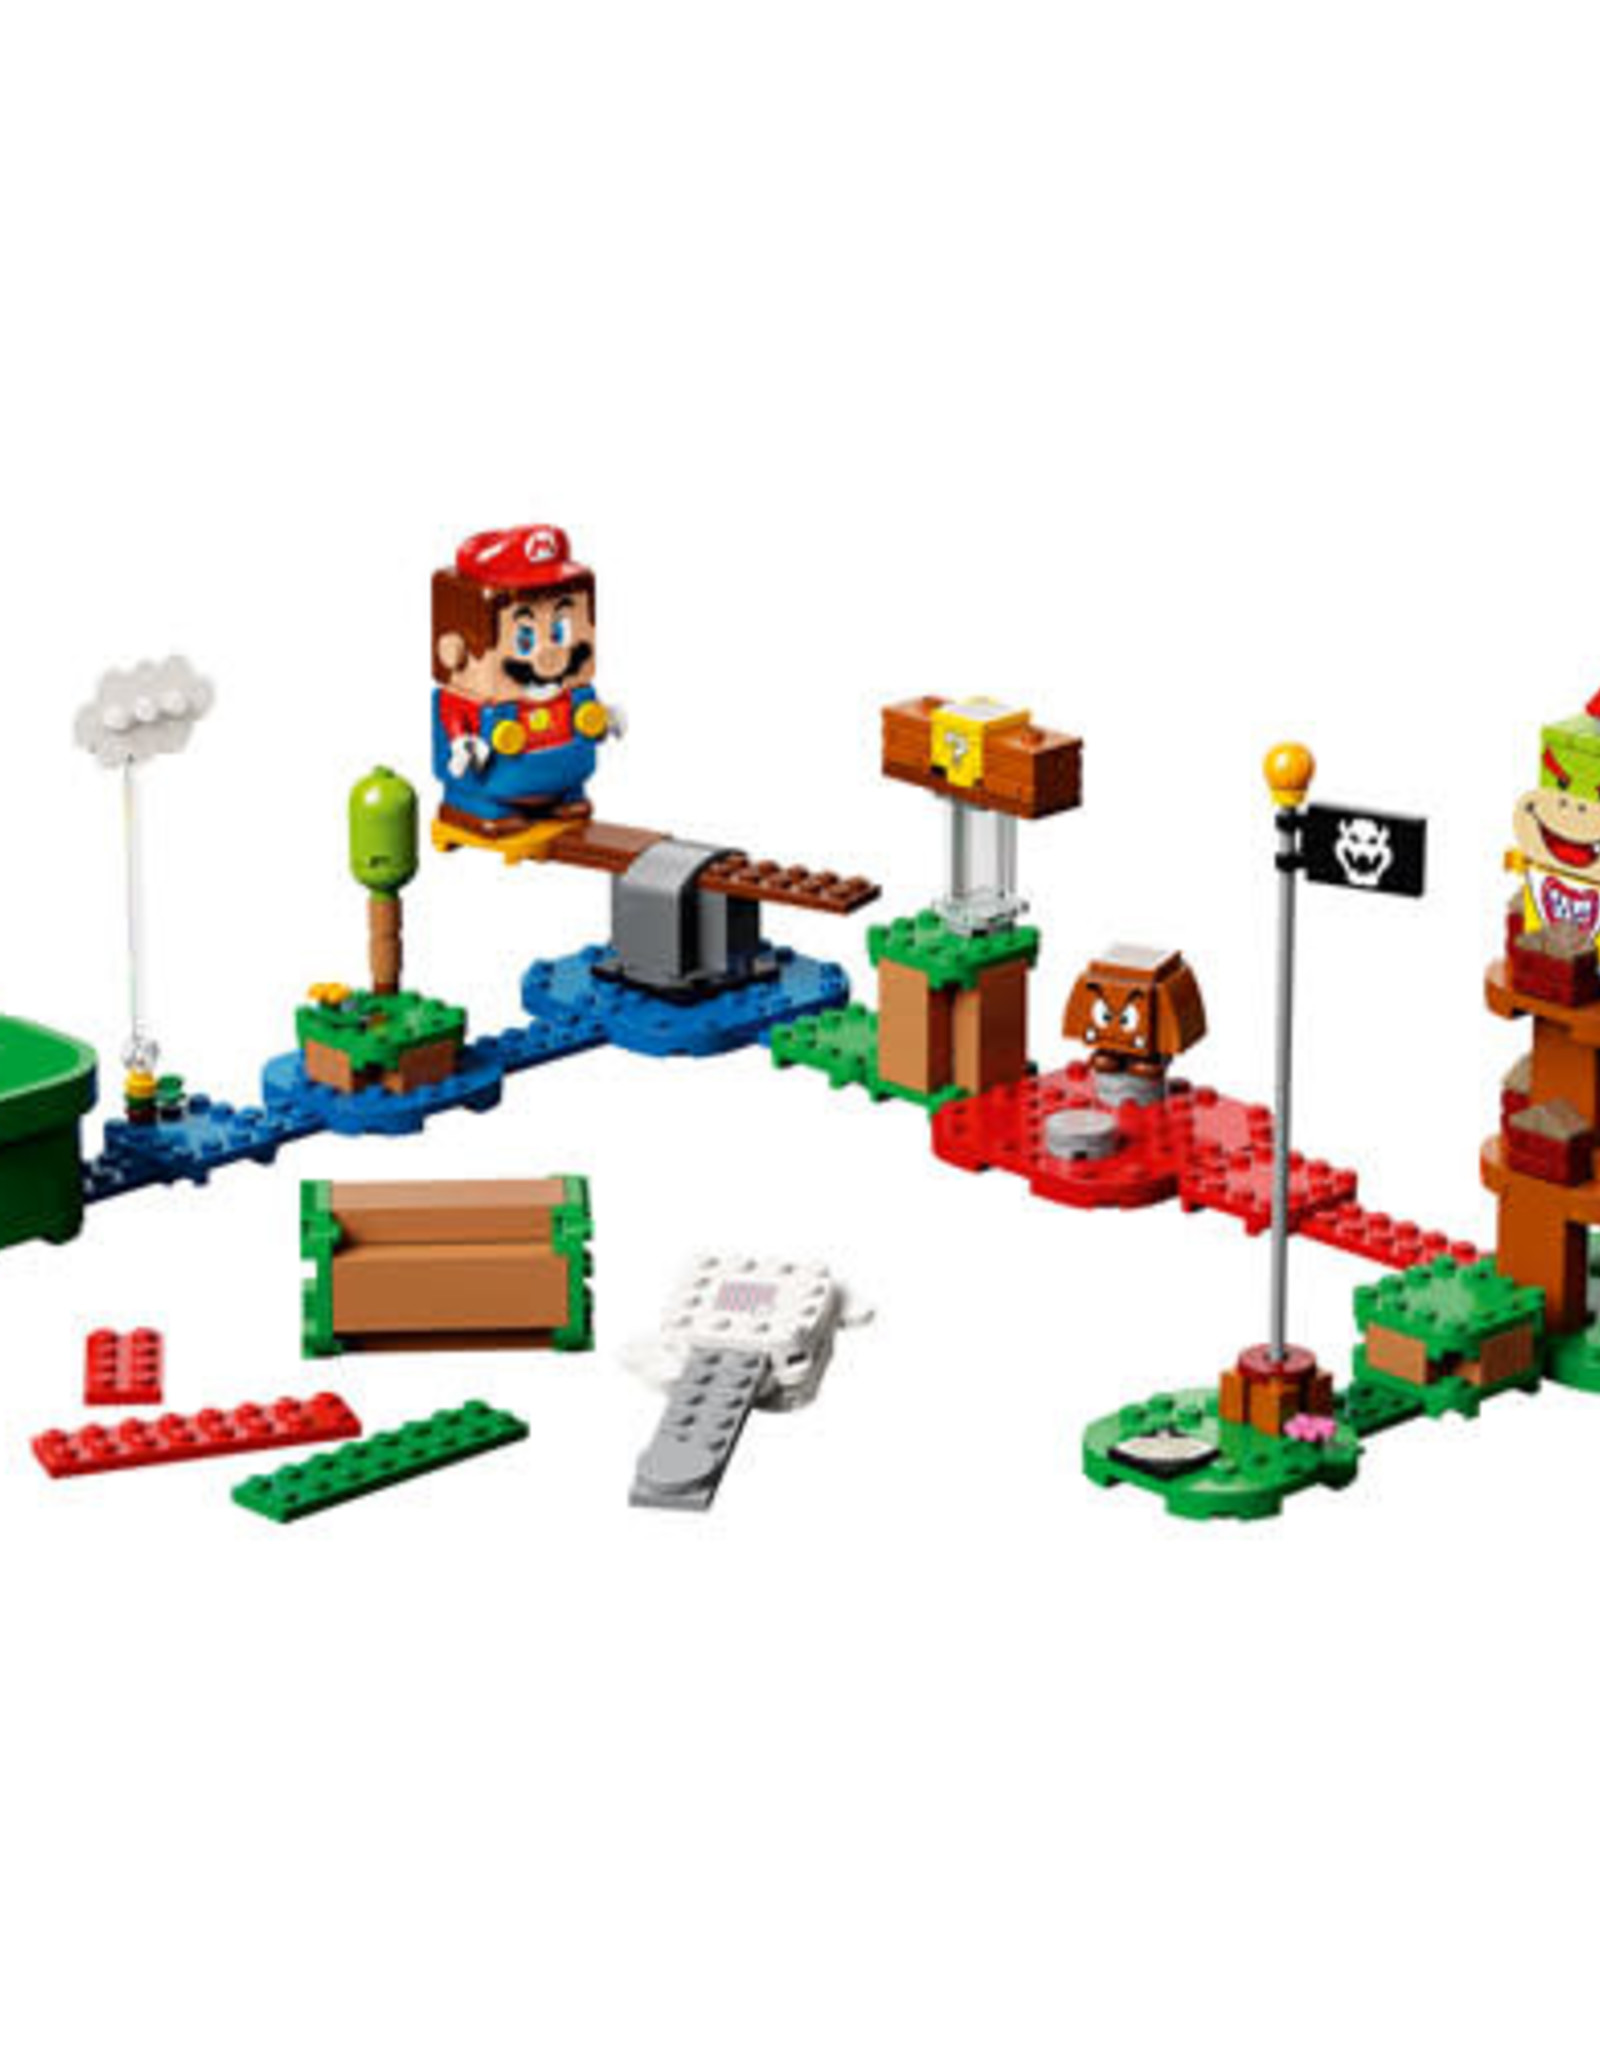 LEGO Adventures with Mario